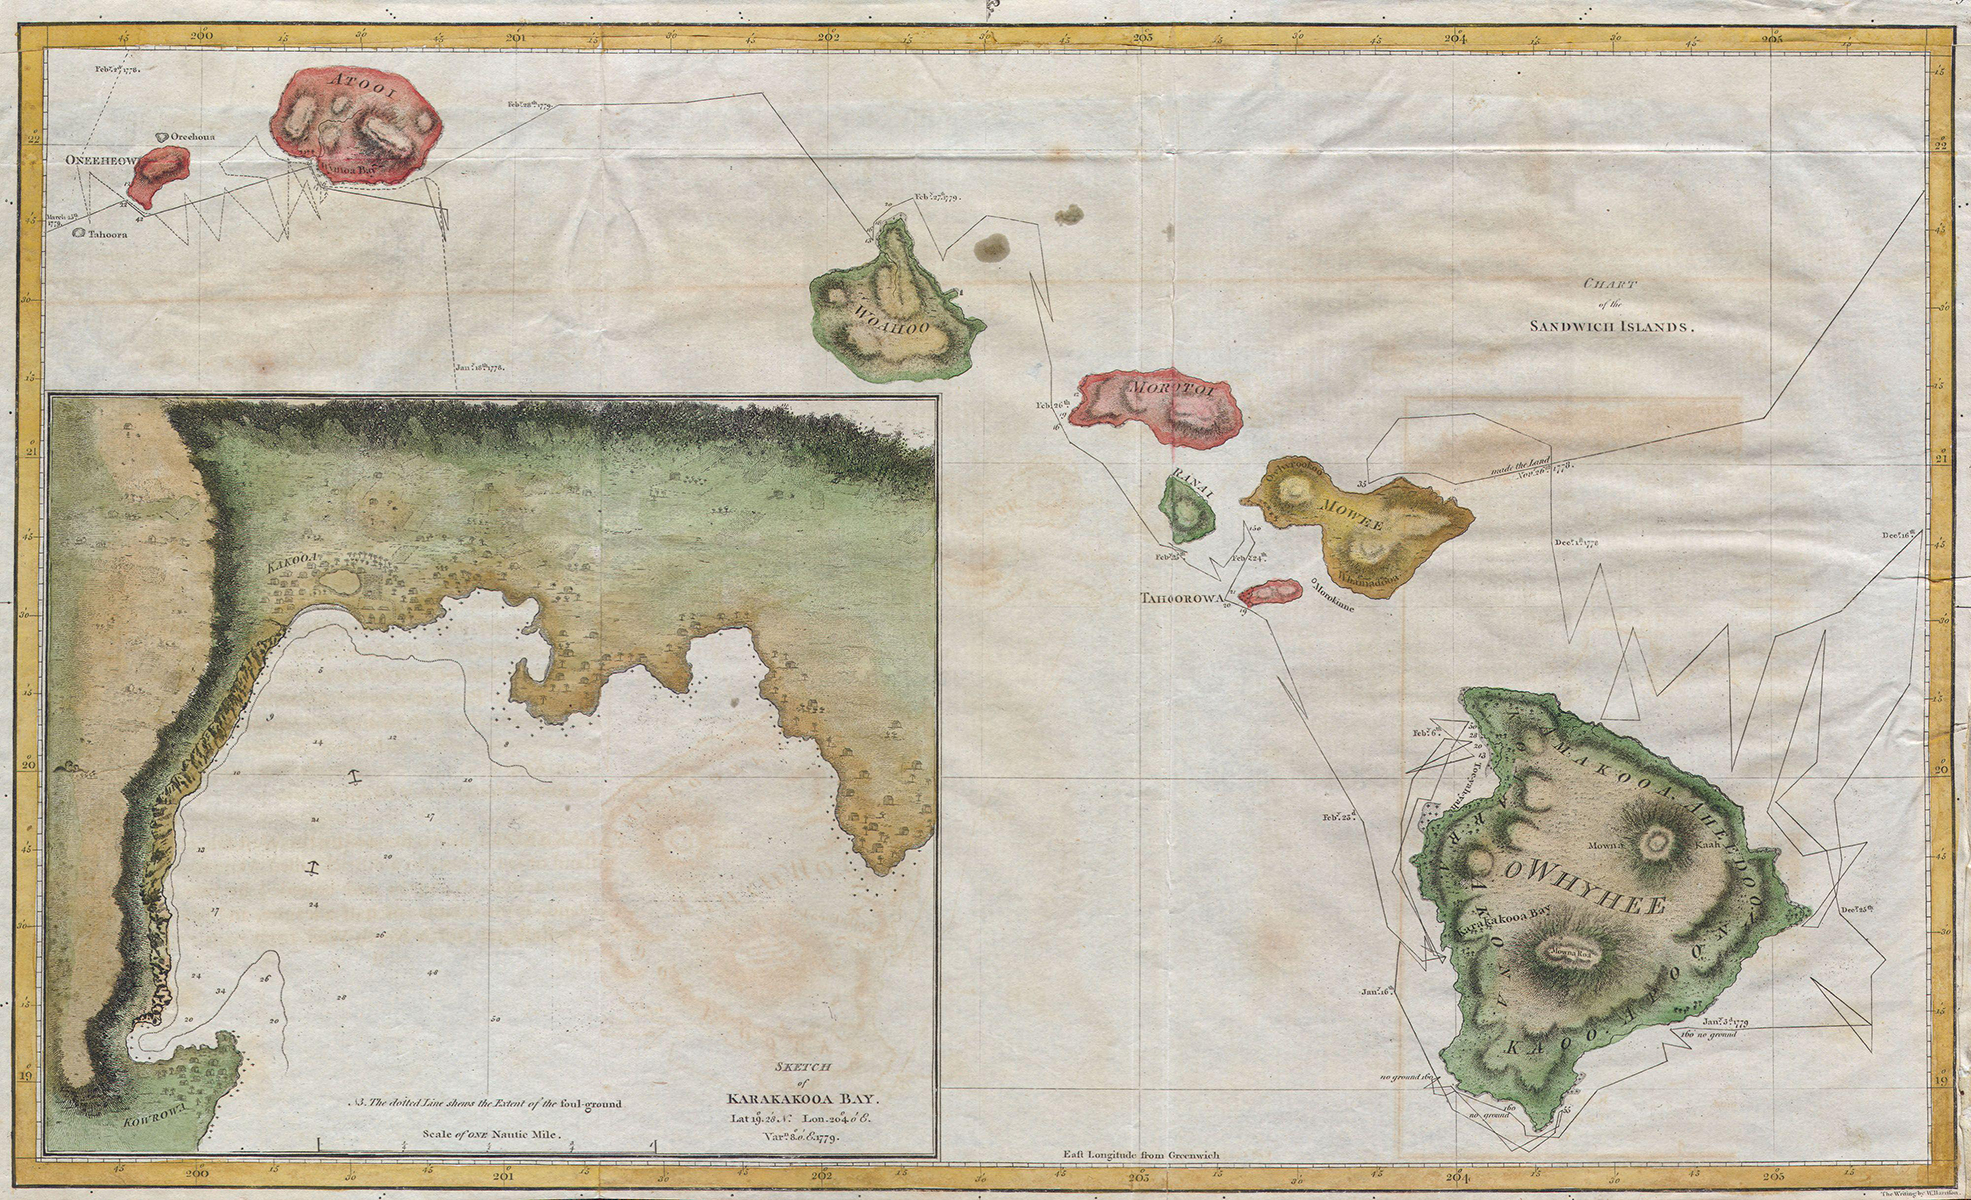 [Chart of the Sandwich Islands] By G. Nicol and T. Cadell.